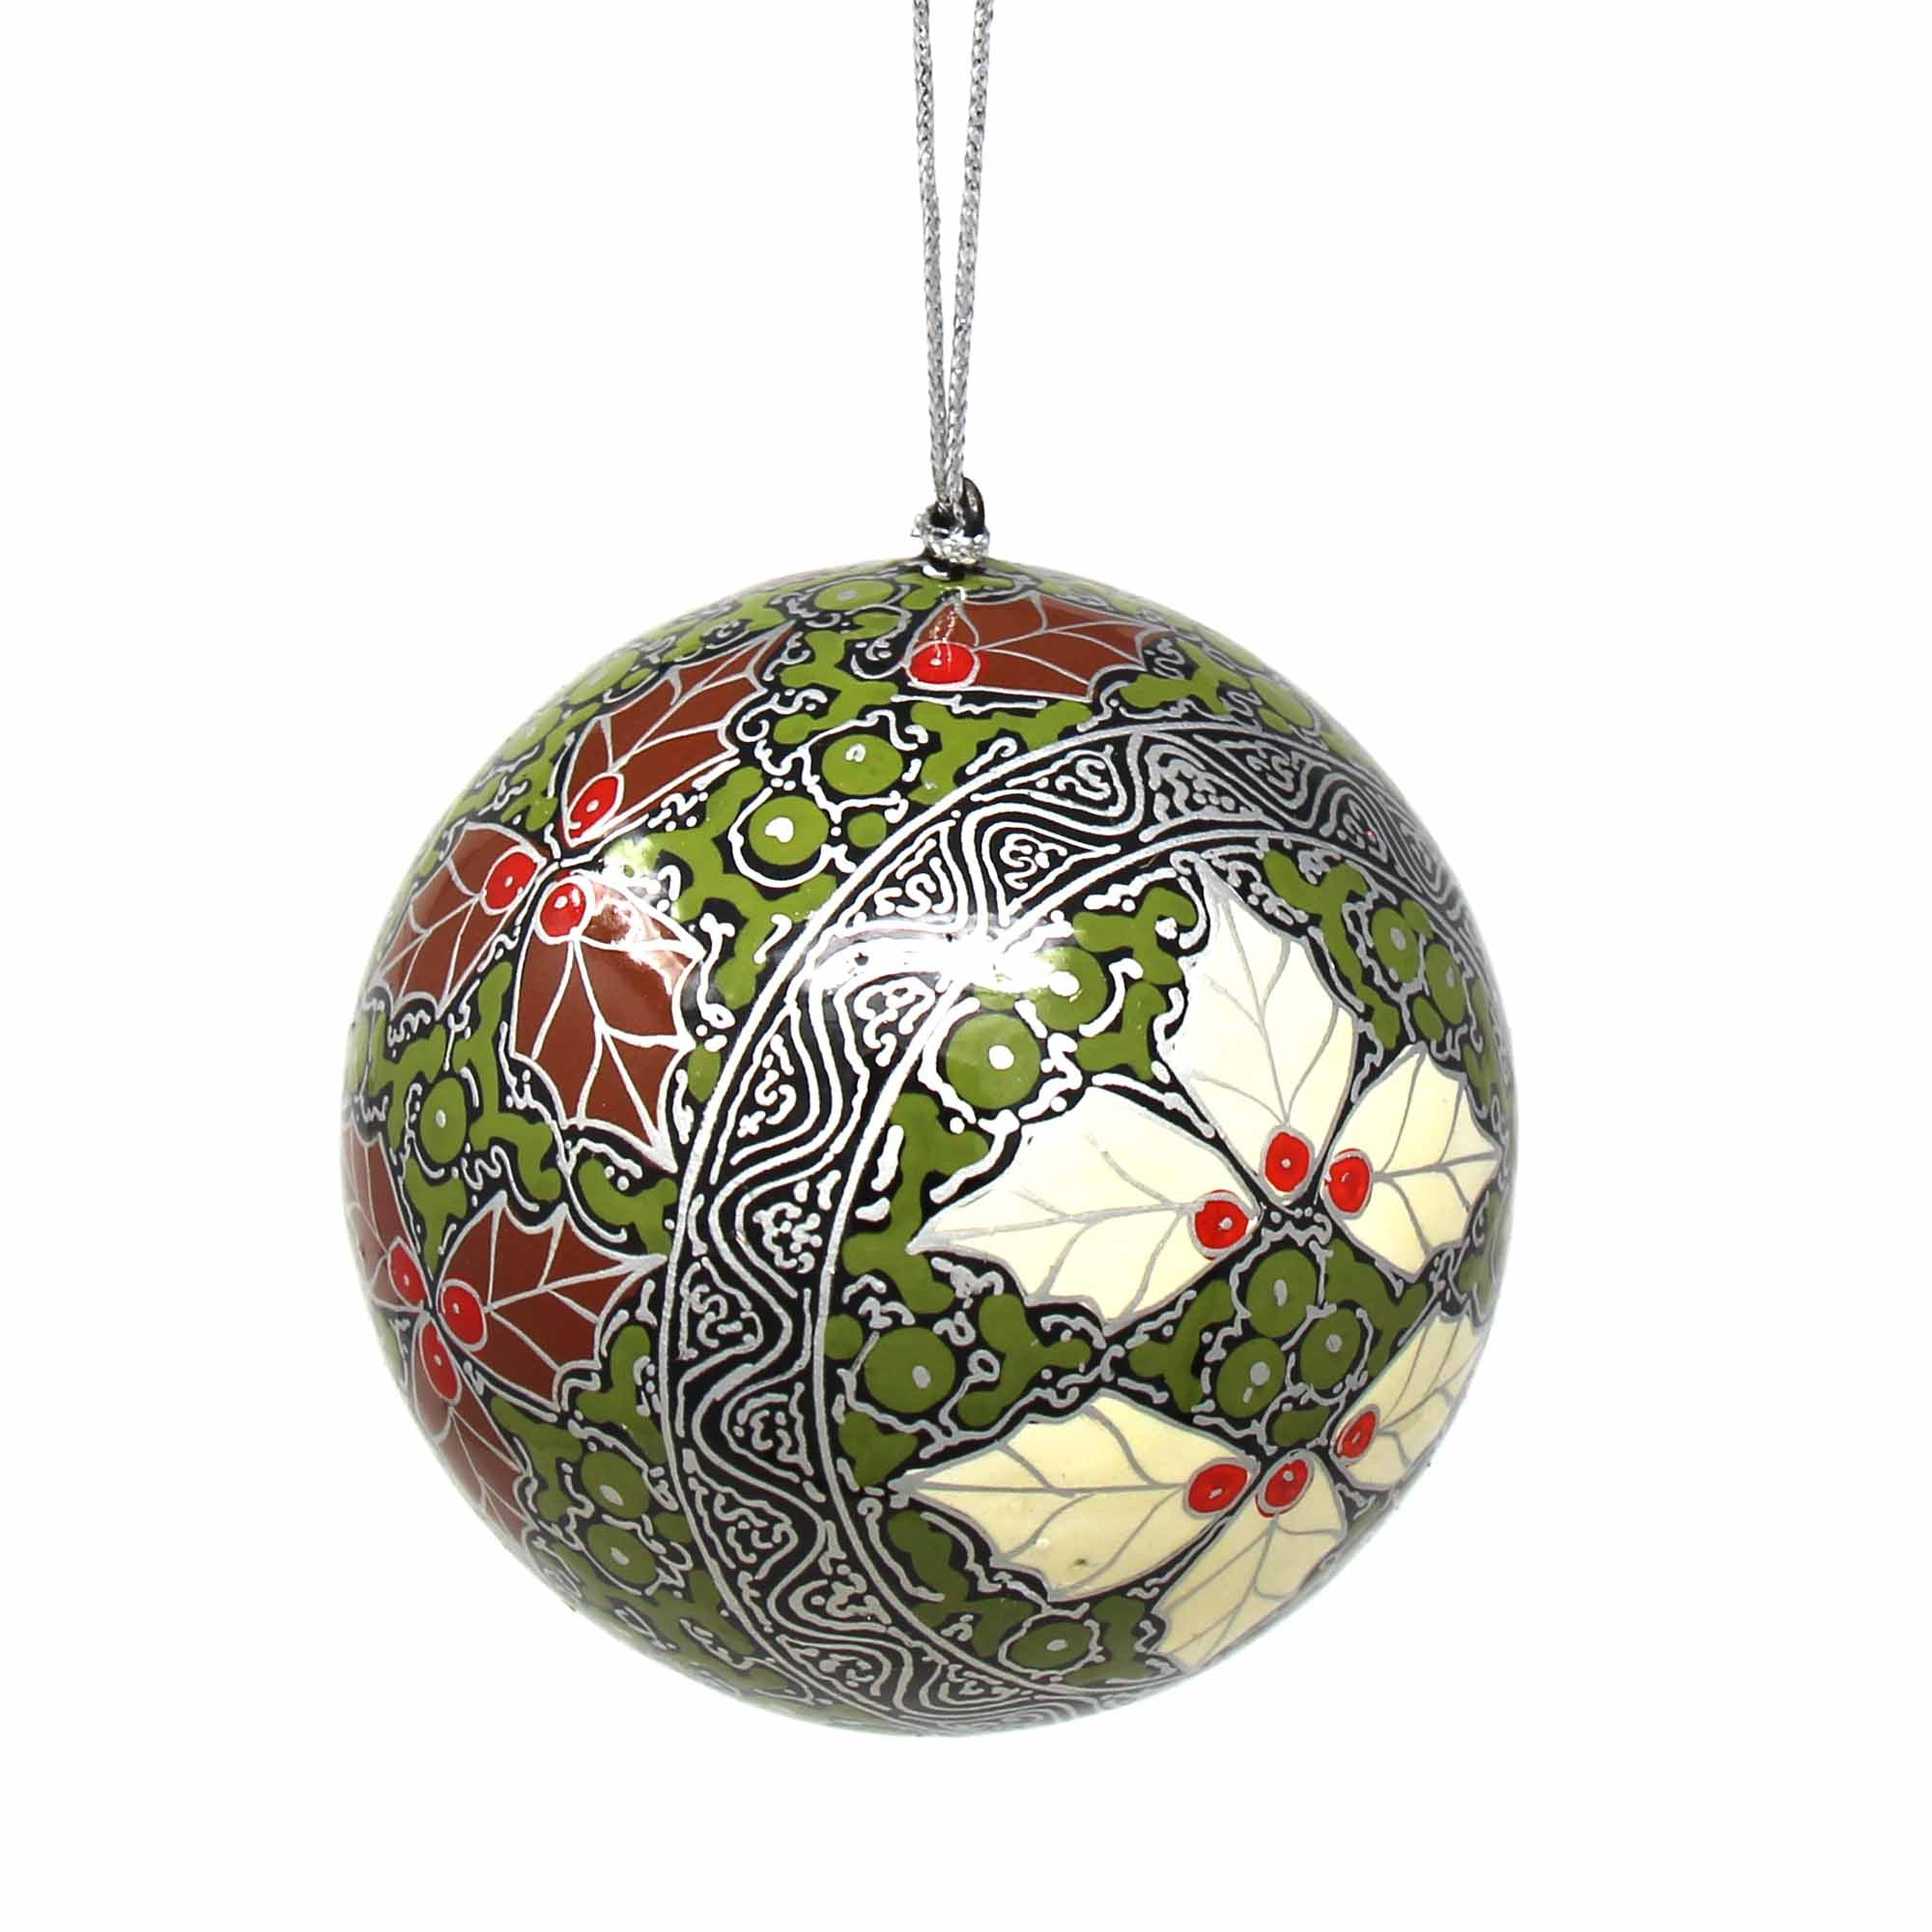 Handpainted Red and Silver Chinar Leaves Papier Mache Hanging Ball Ornament